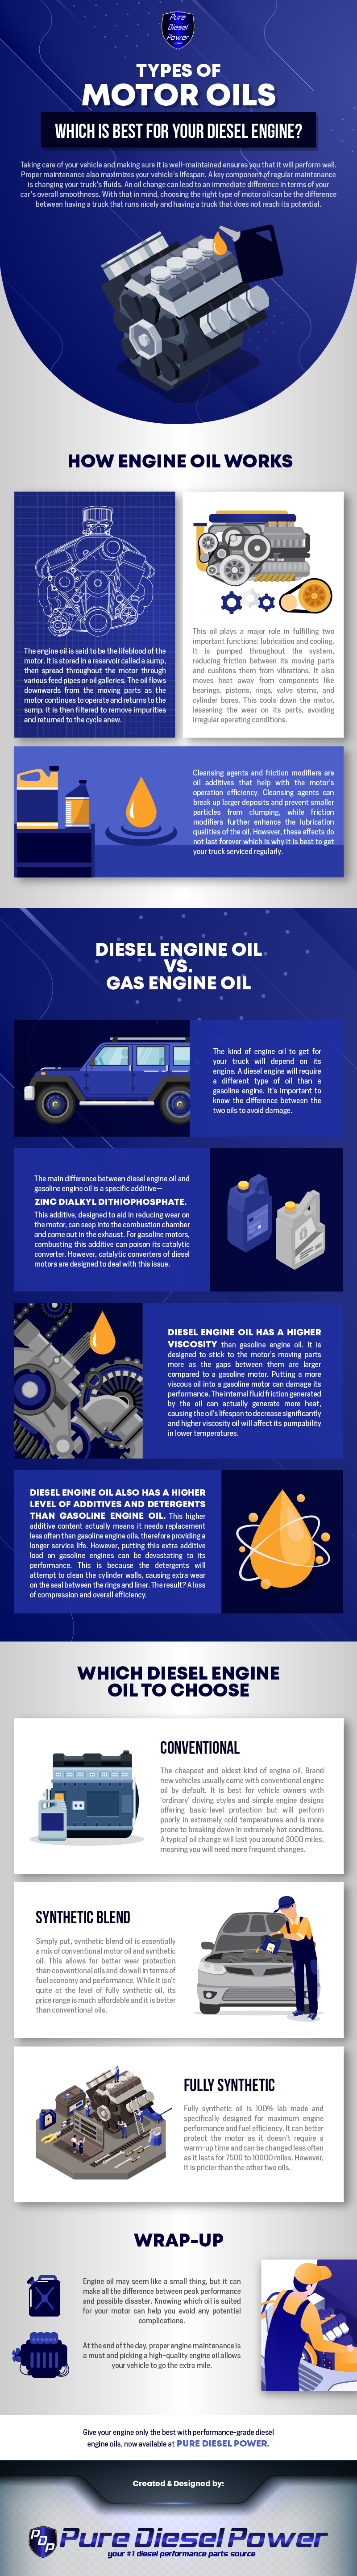 types-of-motor-oil-which-best-for-diesel-engine-infographic